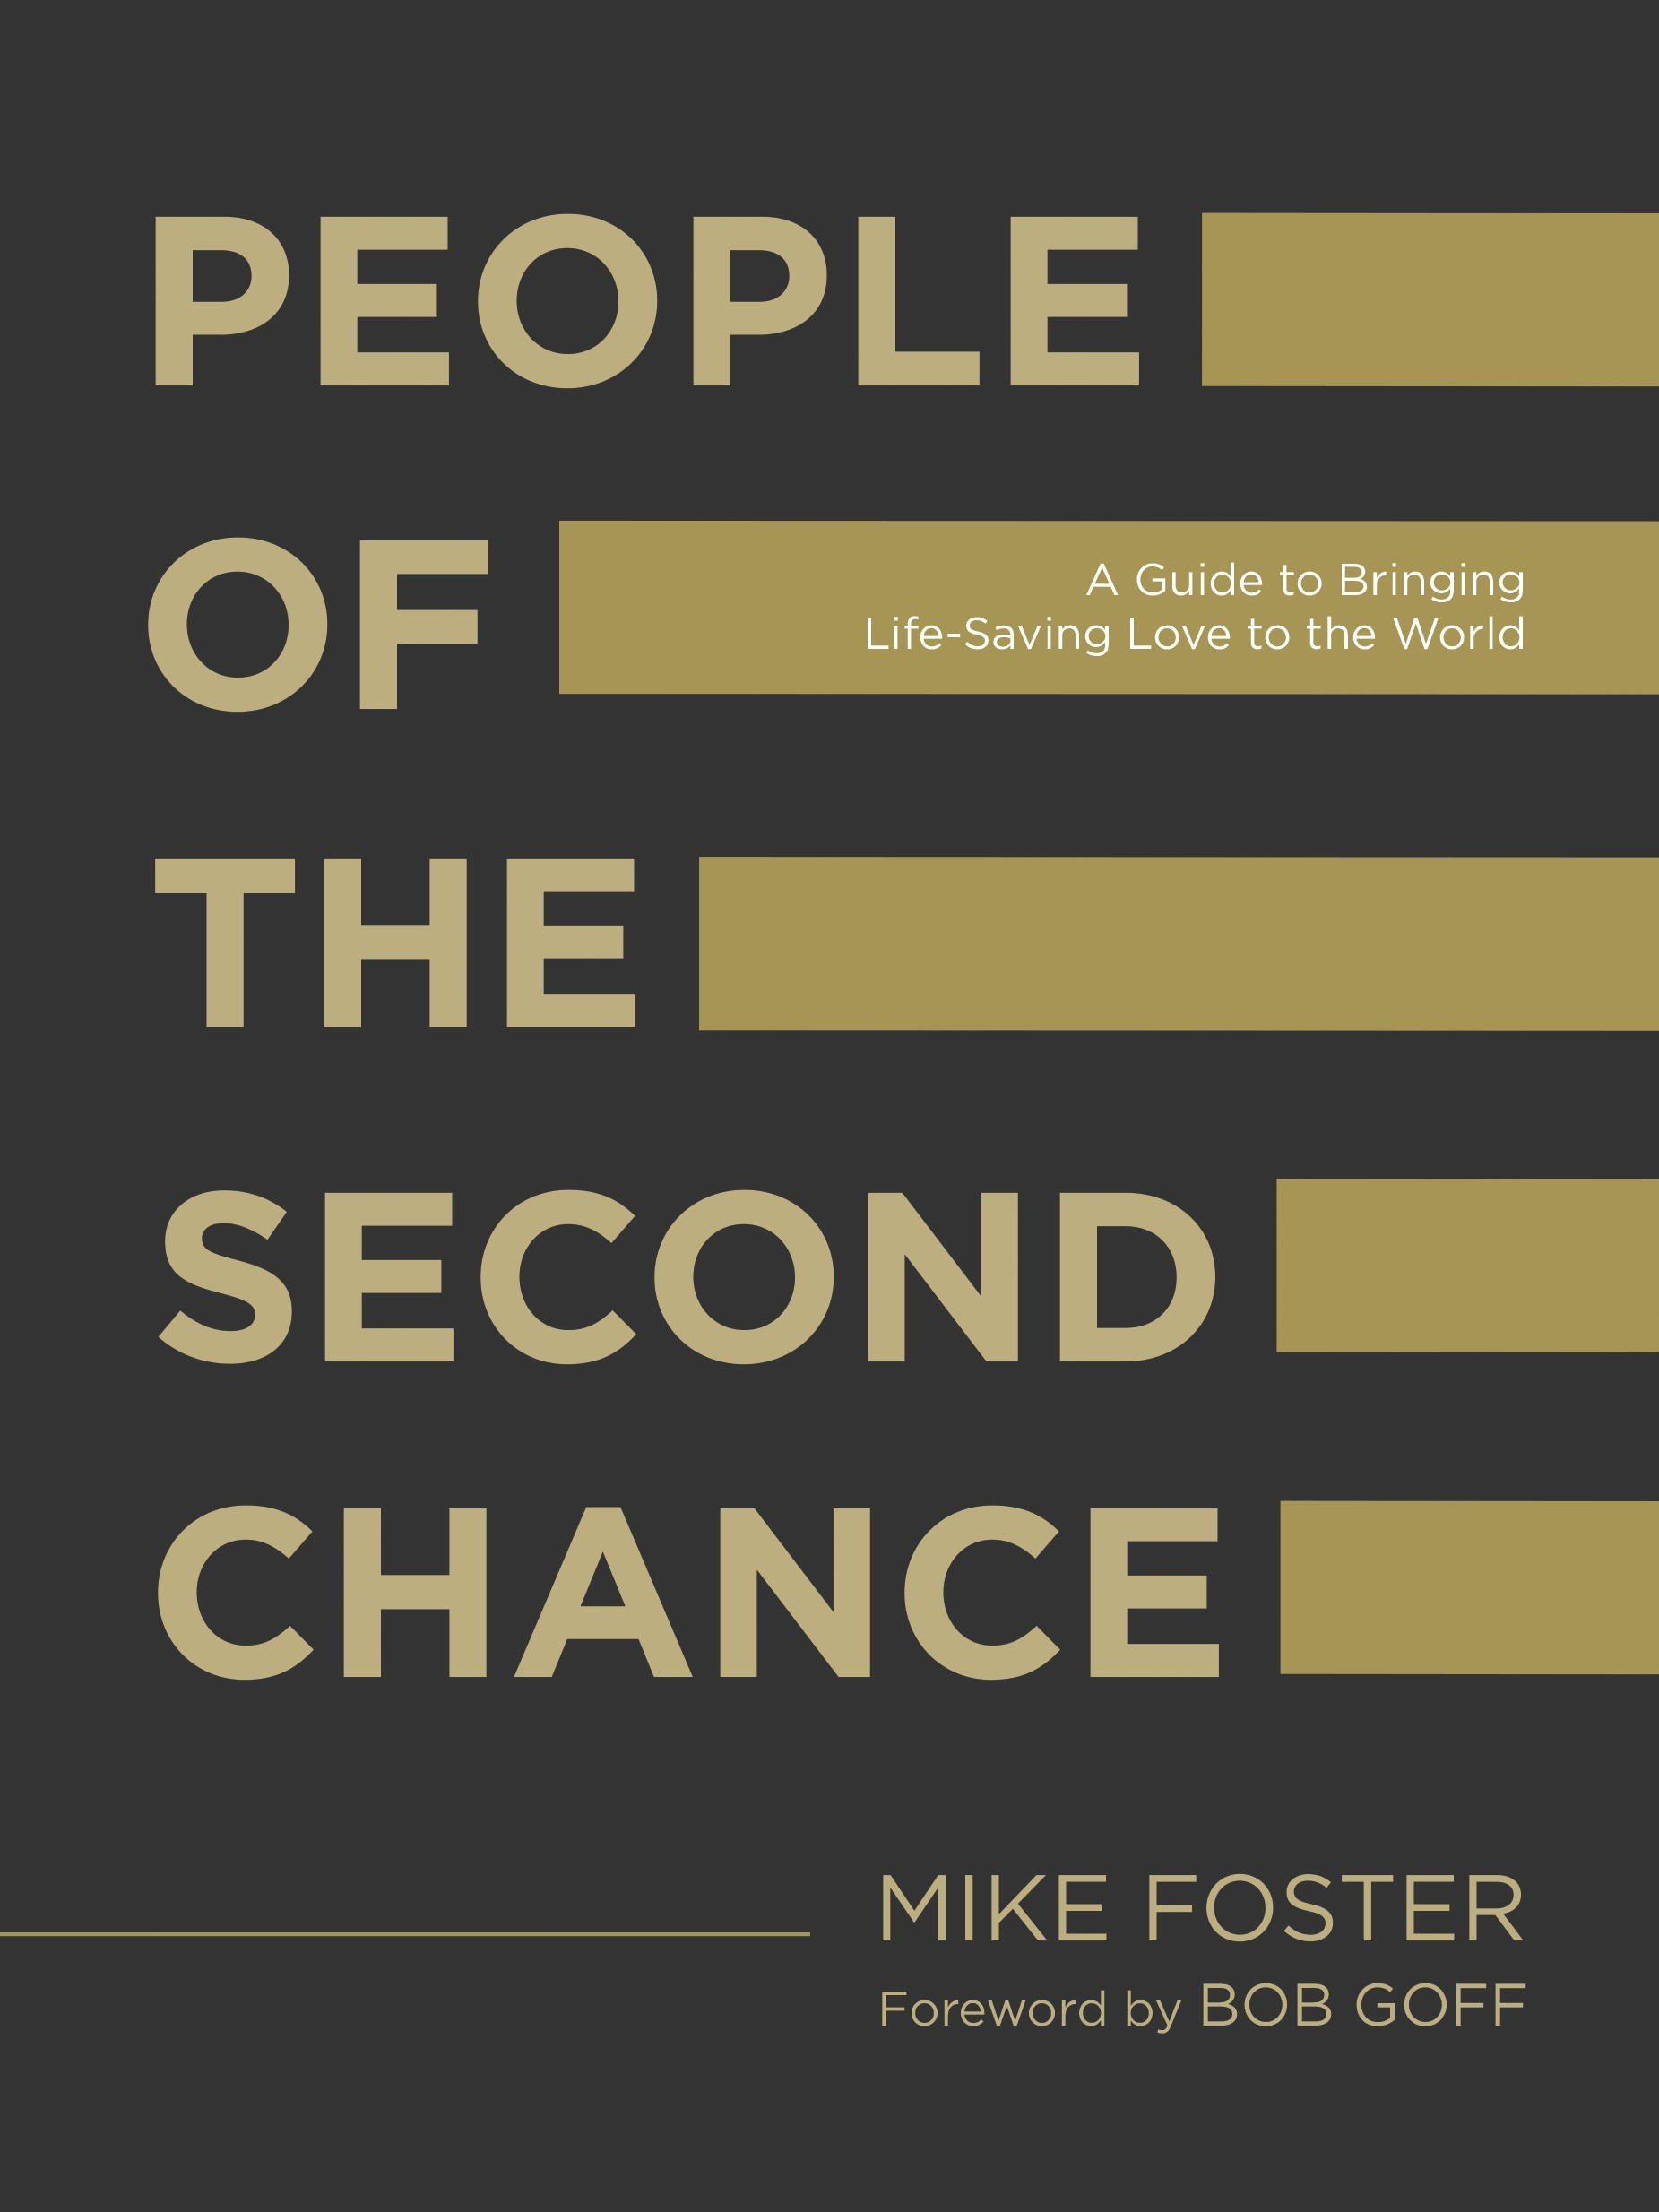 Read Mike's Book!  - A powerful message of hope for anyone burdened by regret and everyone who longs for a fresh start. This simple guide will show you how your imperfect life matters in ways you never thought possible. It will help you see your scars, flaws, and failures as unfair advantages and gifts that you can bring to the world.  Foster's examination of hope is one part challenge, two parts encouragement. He forces the reader to ask the following questions: How did I lose it? How do I get? How do I give it? Each question is broken down into core concepts that are essential to a life devoted to the power of second chances: awareness, discovery, ownership, forgiveness, acceptance and freedom.Packed full of unfiltered honesty and simple next steps, this manifesto for prodigals, imperfectionists, and hopesters will help you discover beauty in the brokenness.